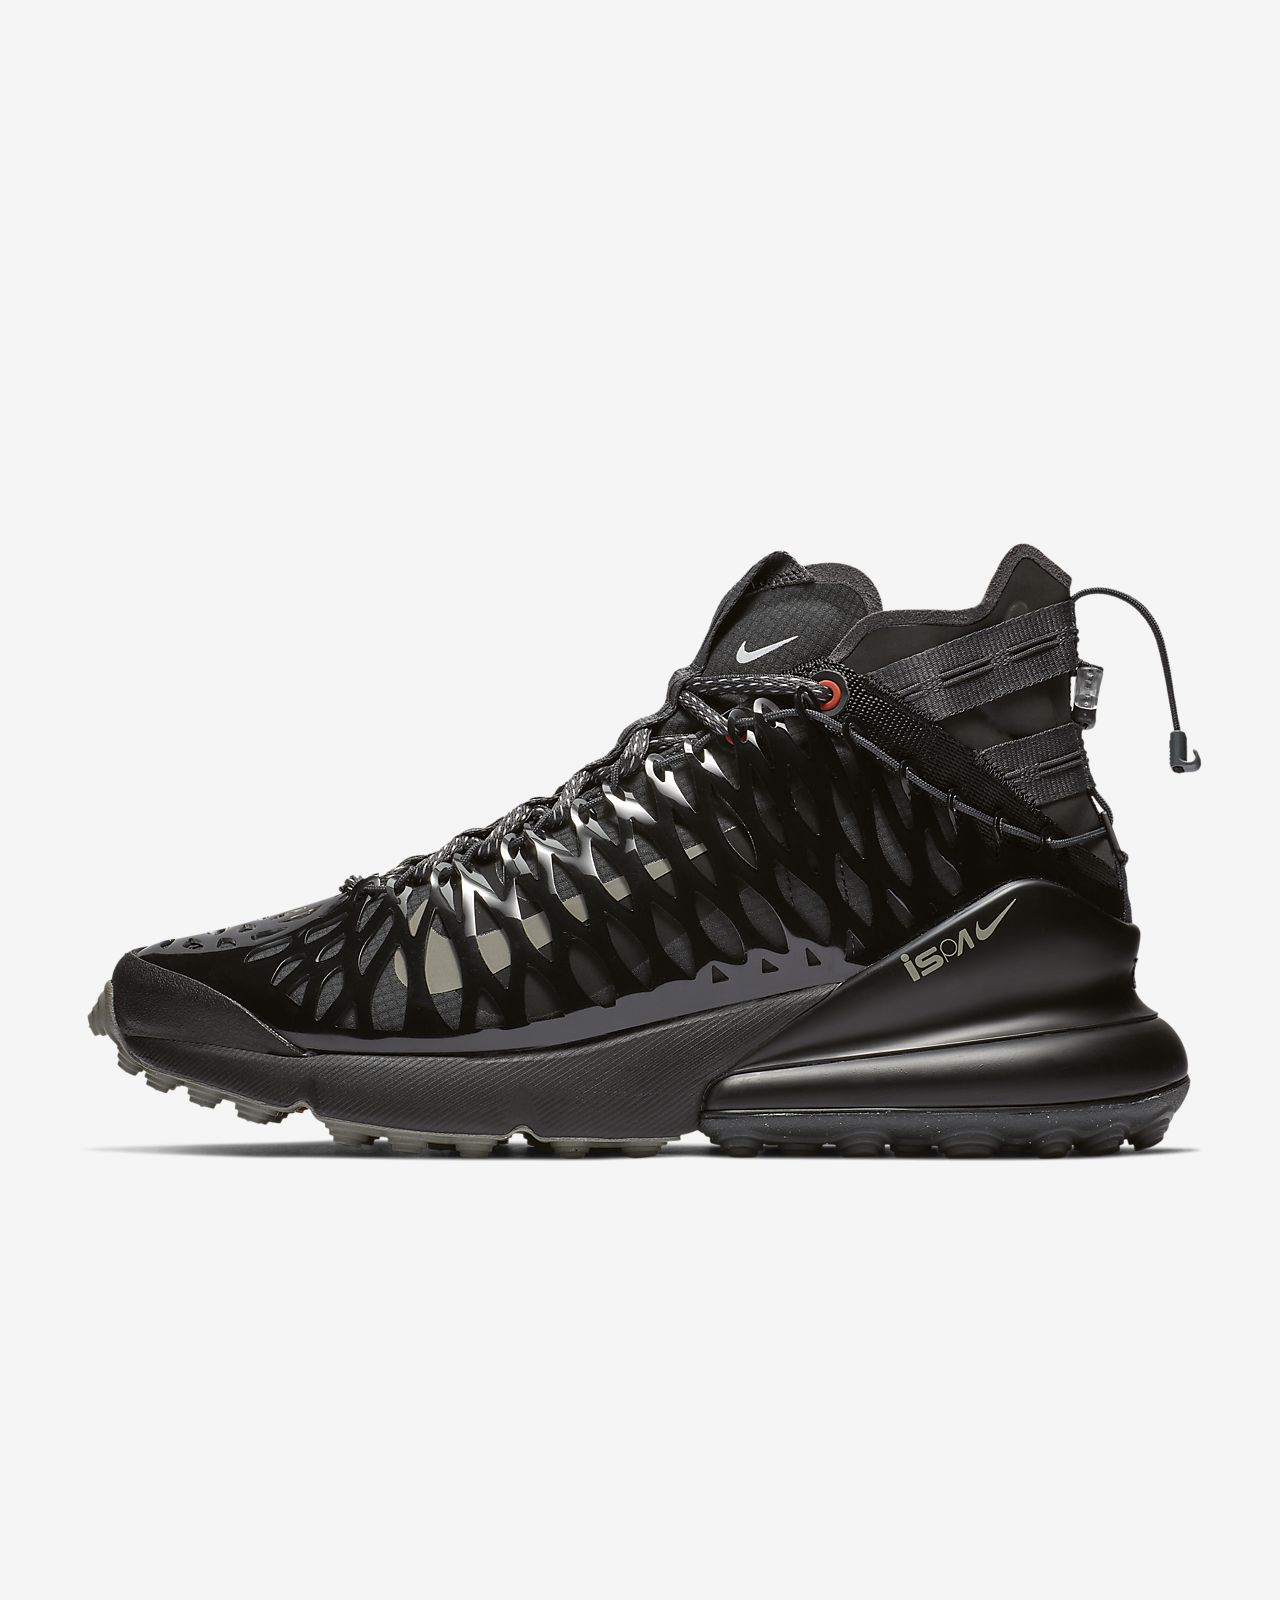 1ad63e14158 Nike Air Max 270 ISPA Men s Shoe. Nike.com